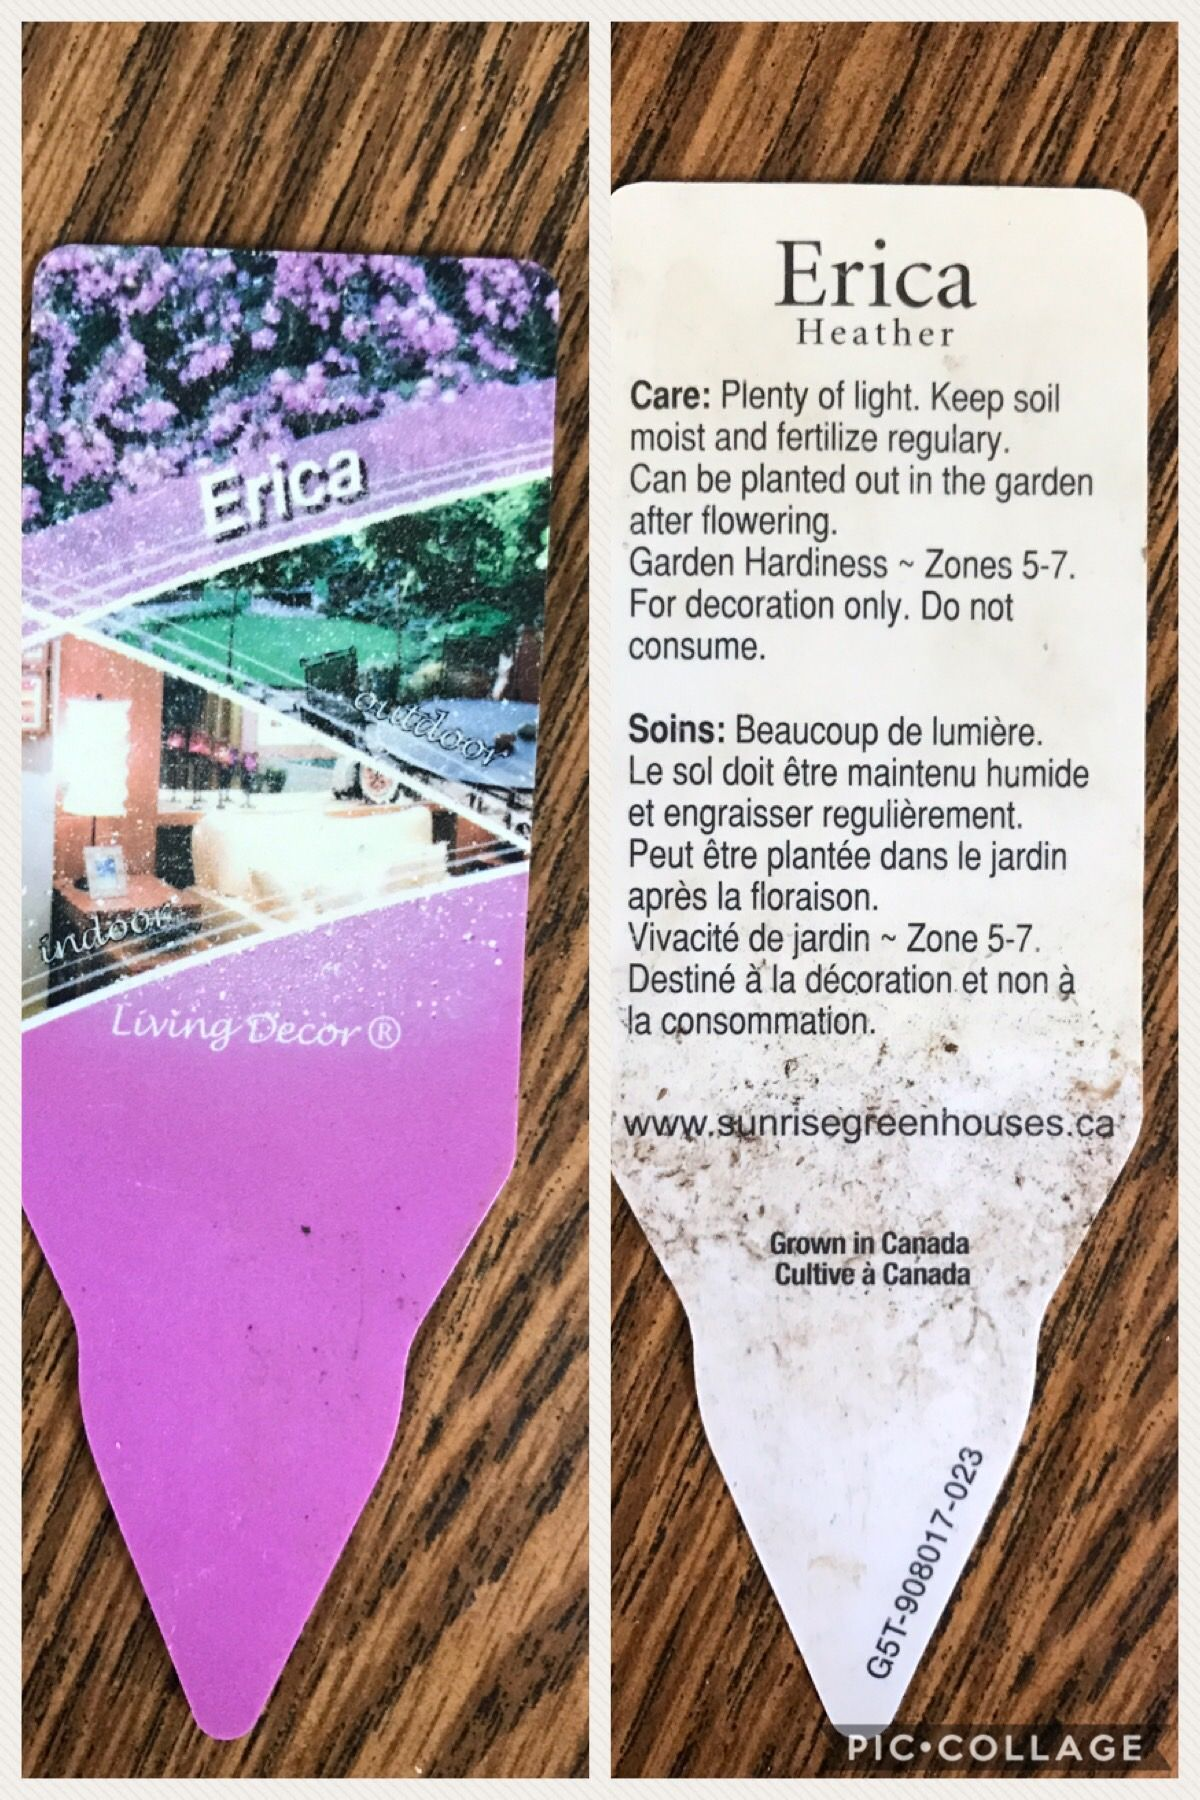 Erica Heather Plant Info Heather Plant Plants Seed Packets